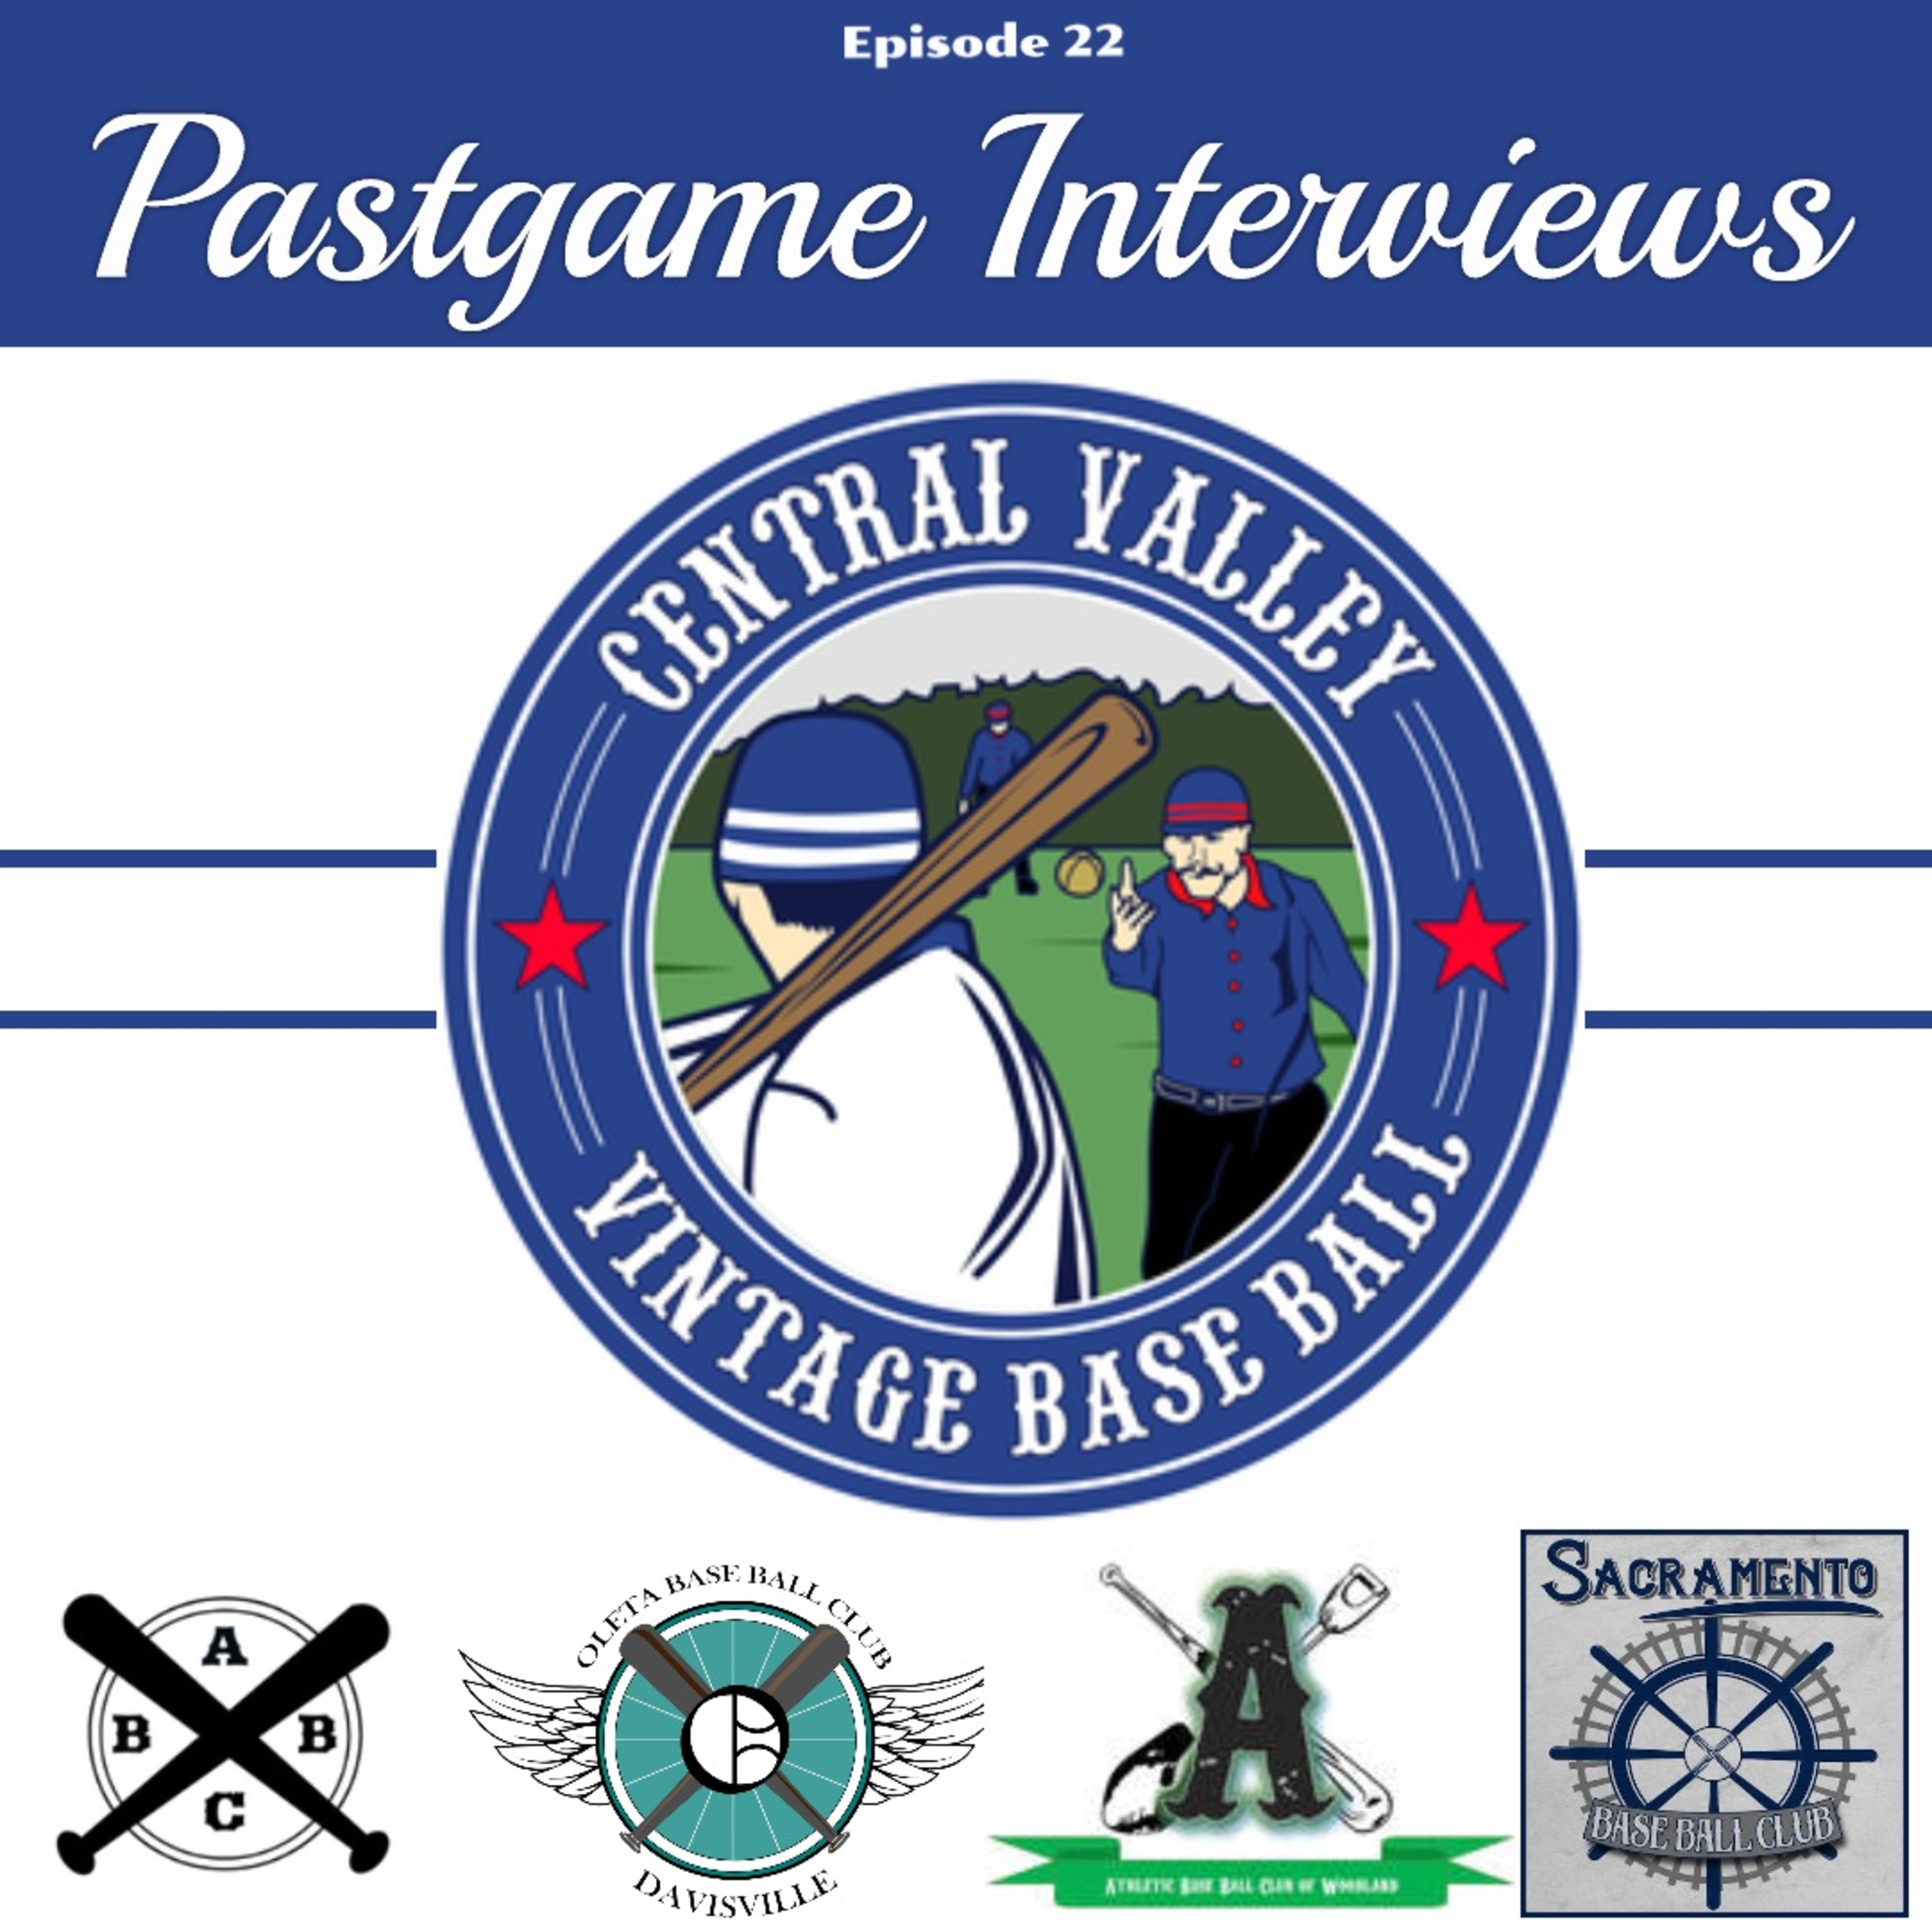 Episode 22: Pastgame Interviews w/ the Central Valley Vintage Base Ball Association.